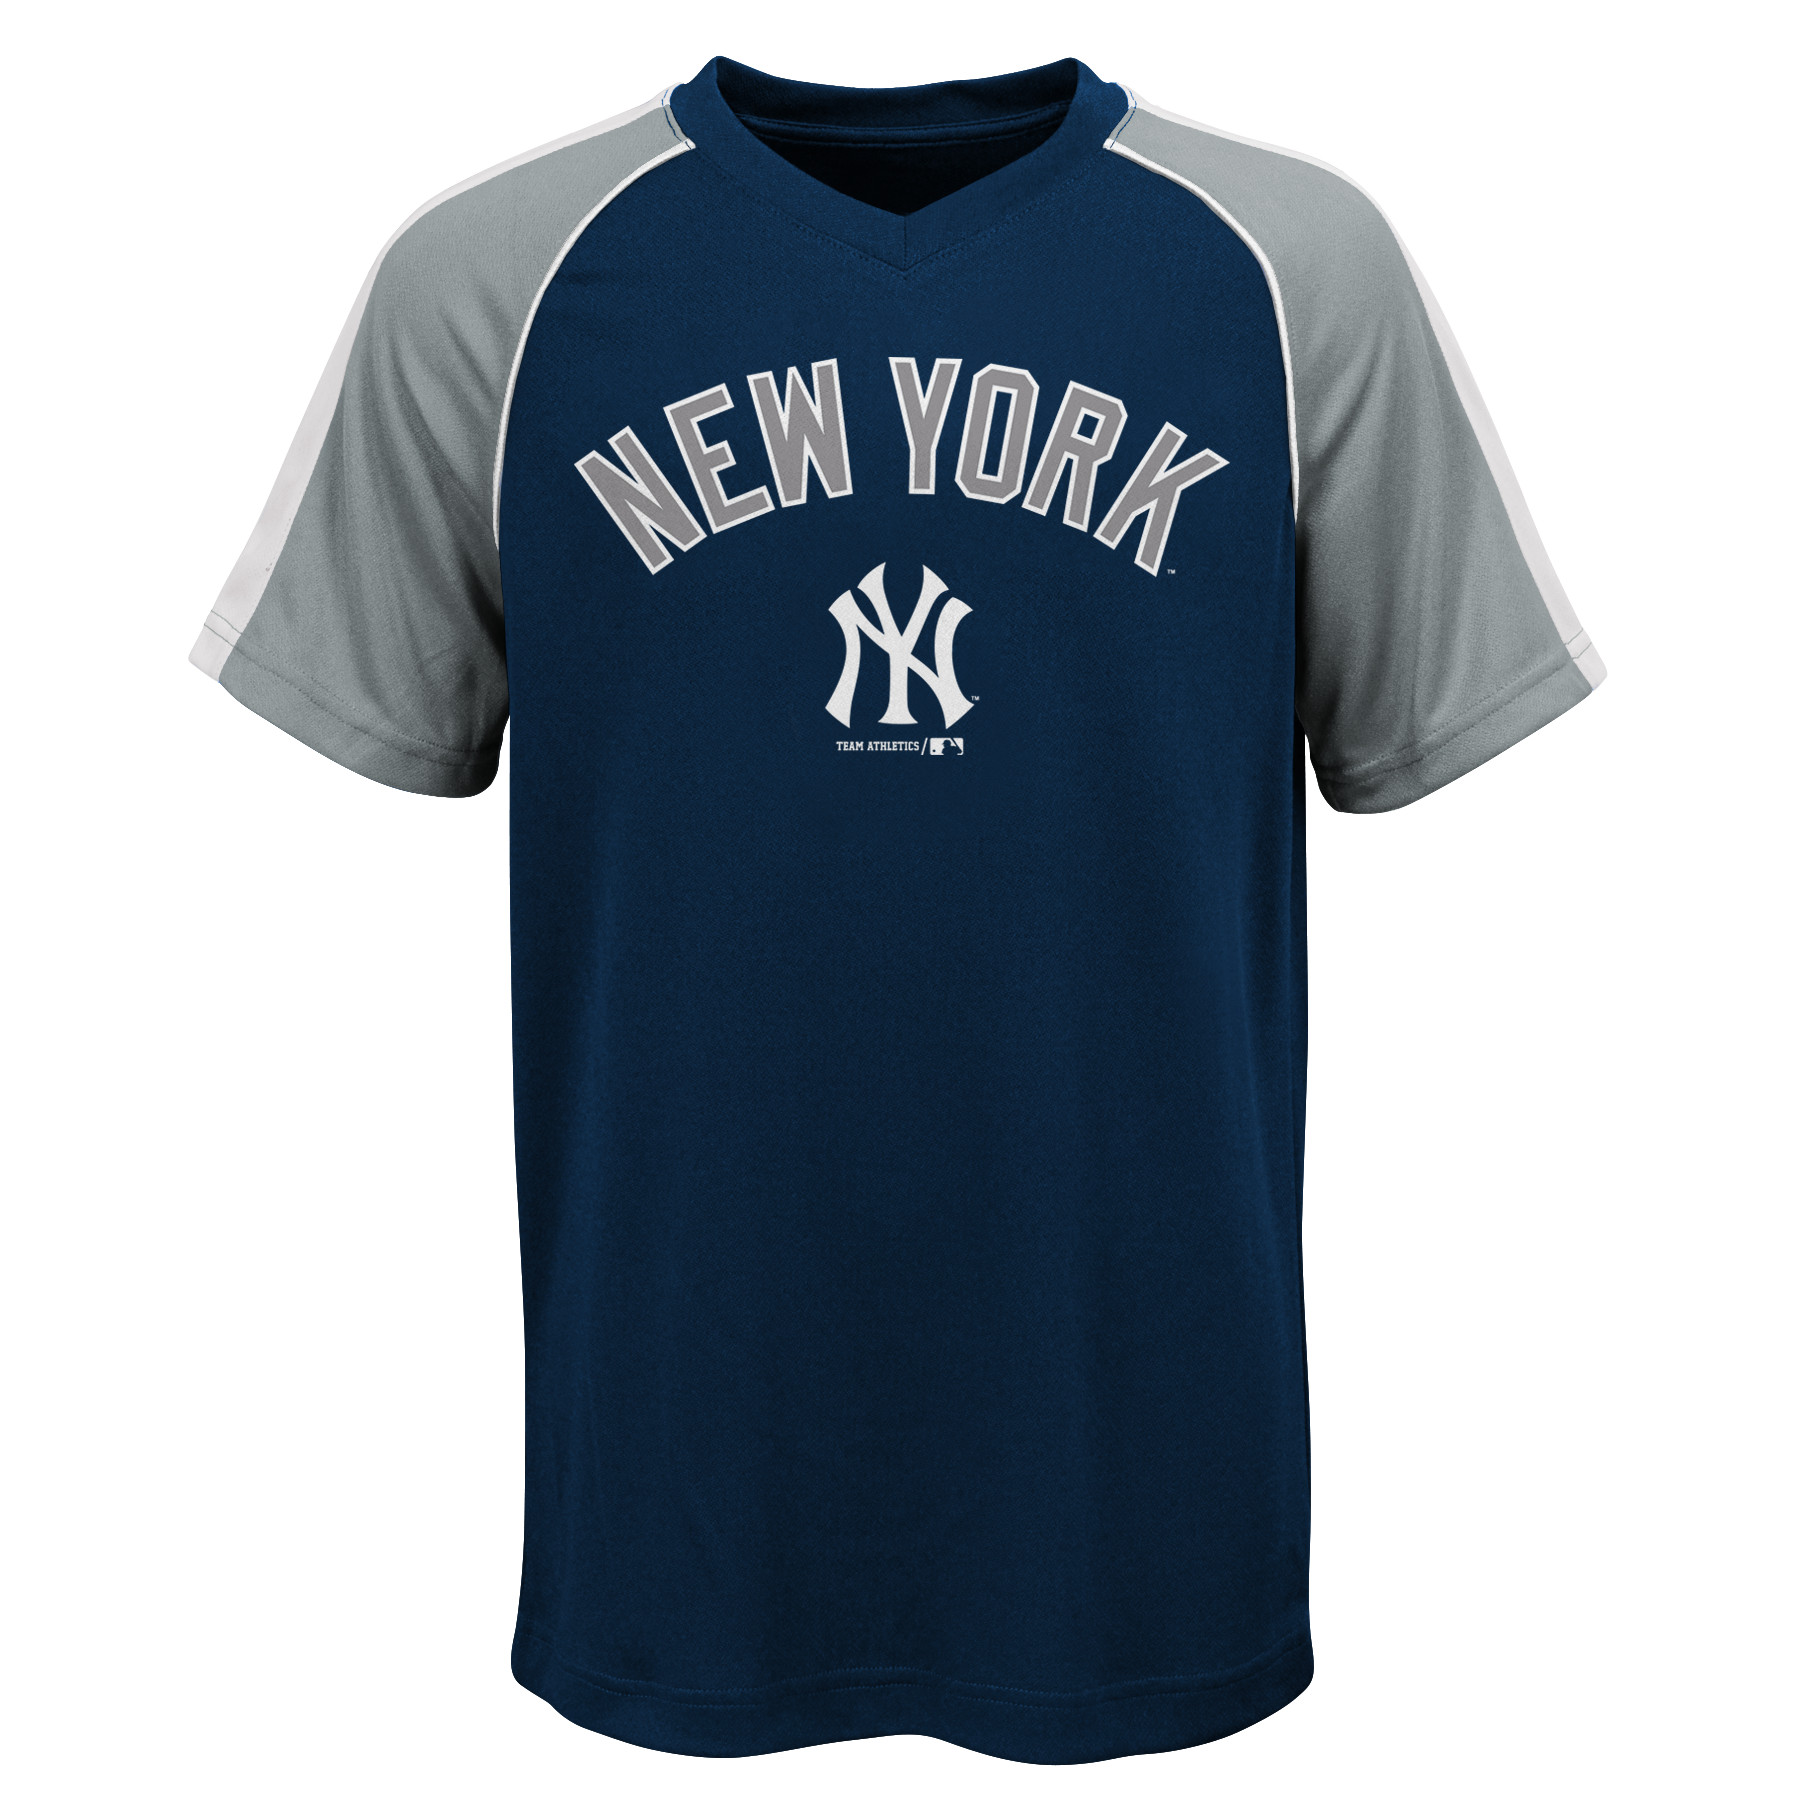 MLB New York YANKEES TEE Short Sleeve Boys Fashion Jersey Tee 100% Polyester Pin Dot Mesh Jersey Team Tee 4-18